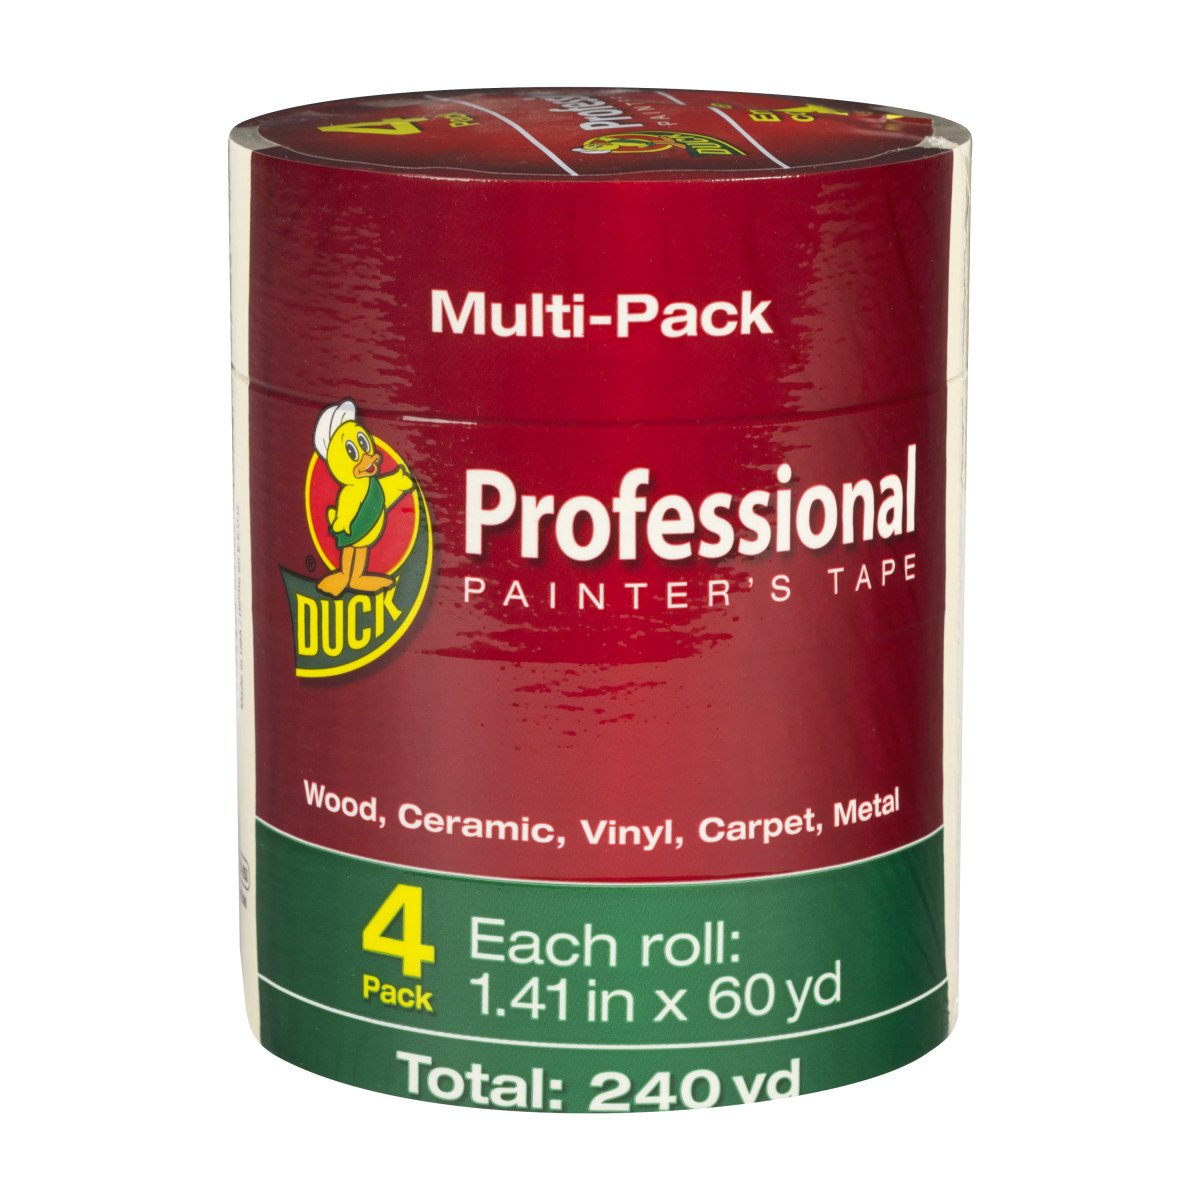 Duck Brand Professional Painter's Tape, 1.41 in. x 60 yd, Beige, 4-Pack (1362492)